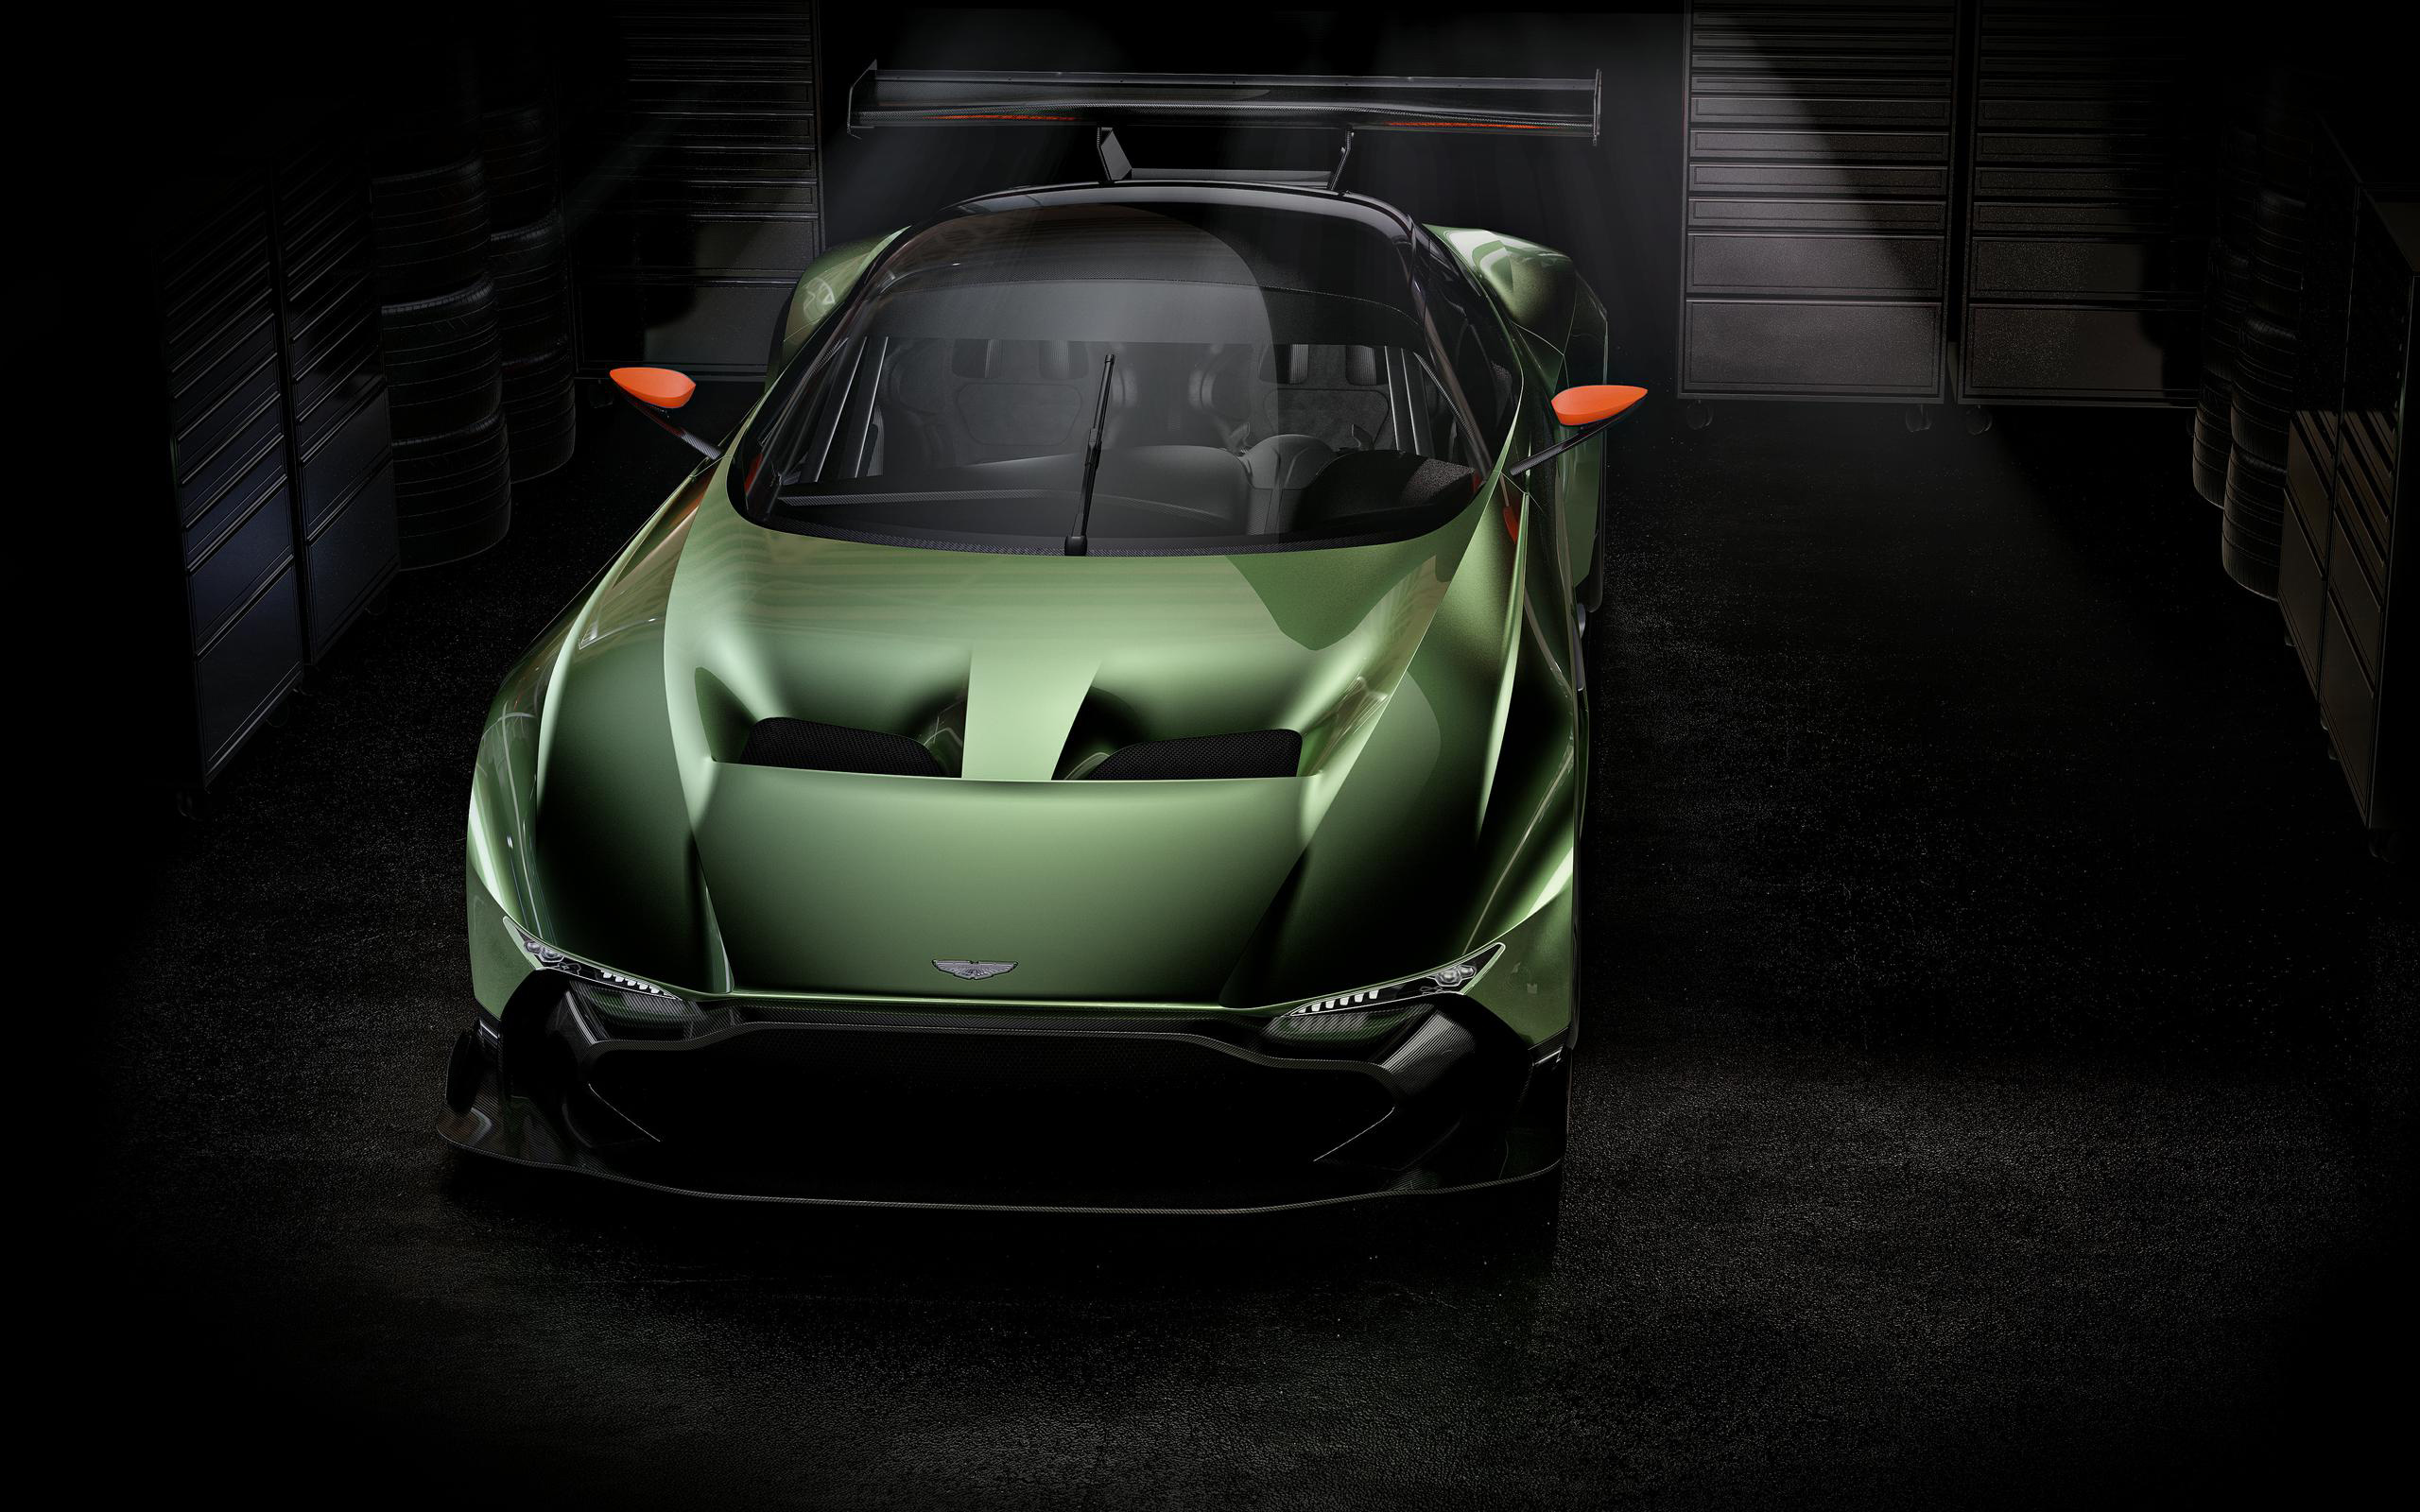 2015 aston martin vulcan front view wallpaper 47504